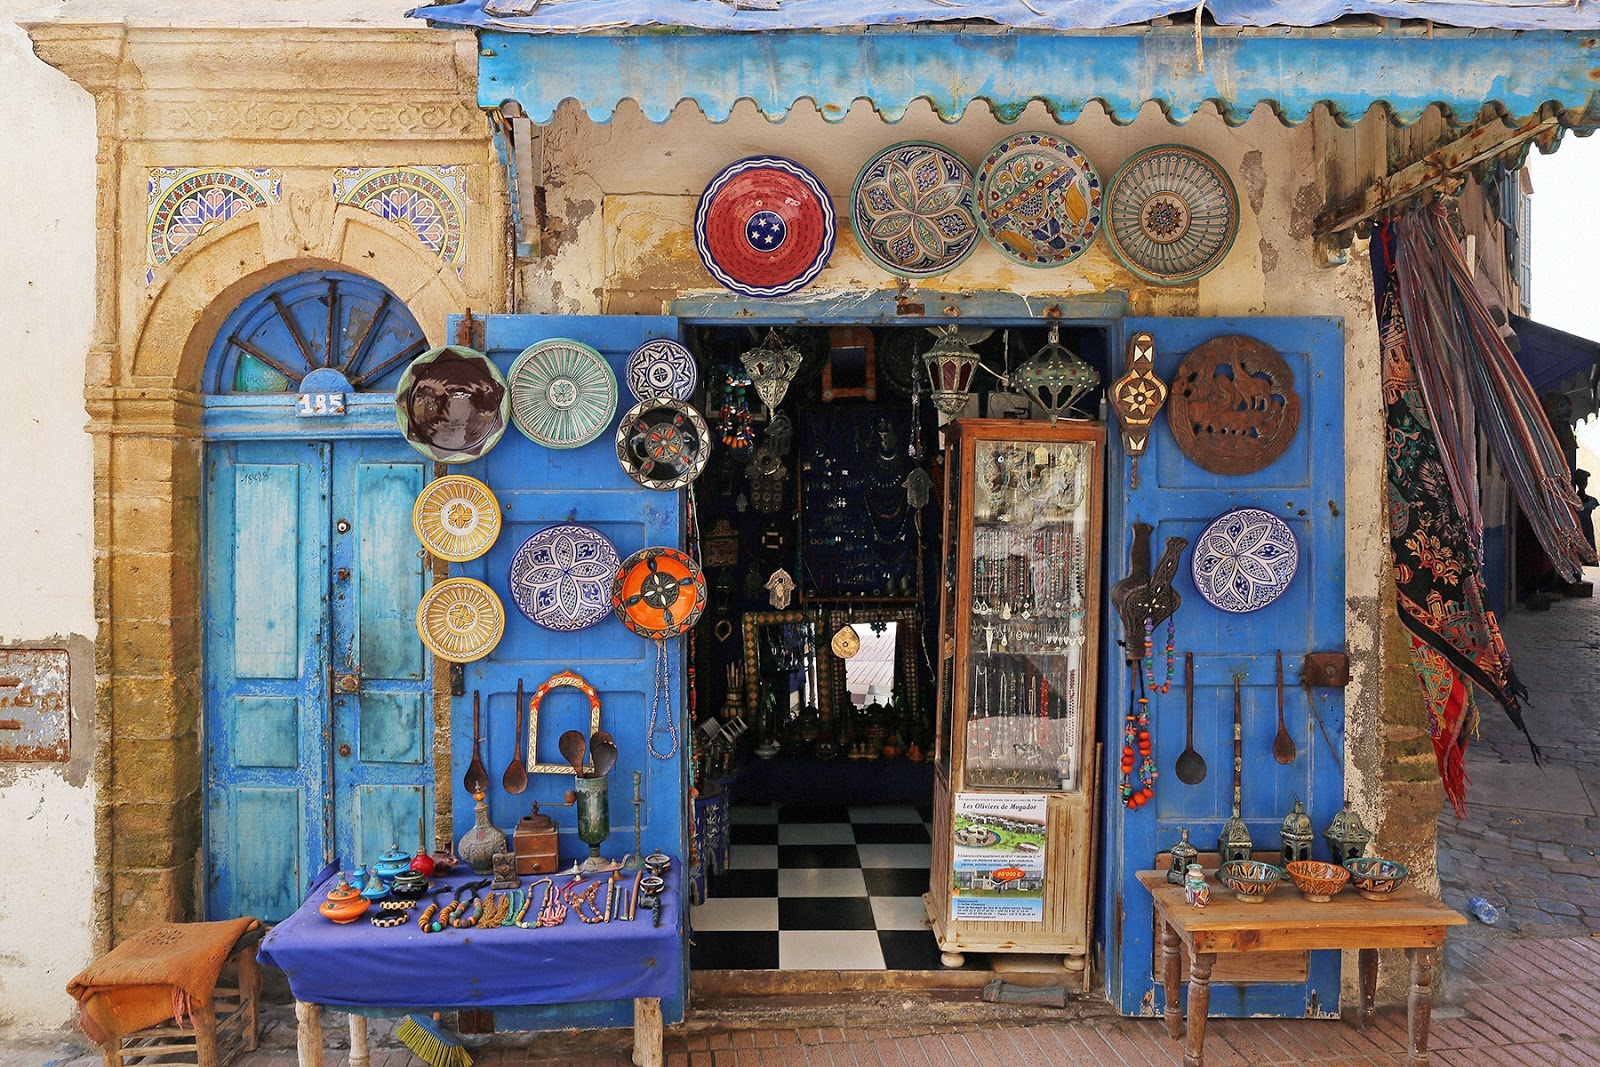 The Santorini of North Africa? The seaside town of Essaouira is the antithesis to everything I had yet experienced in Morocco.